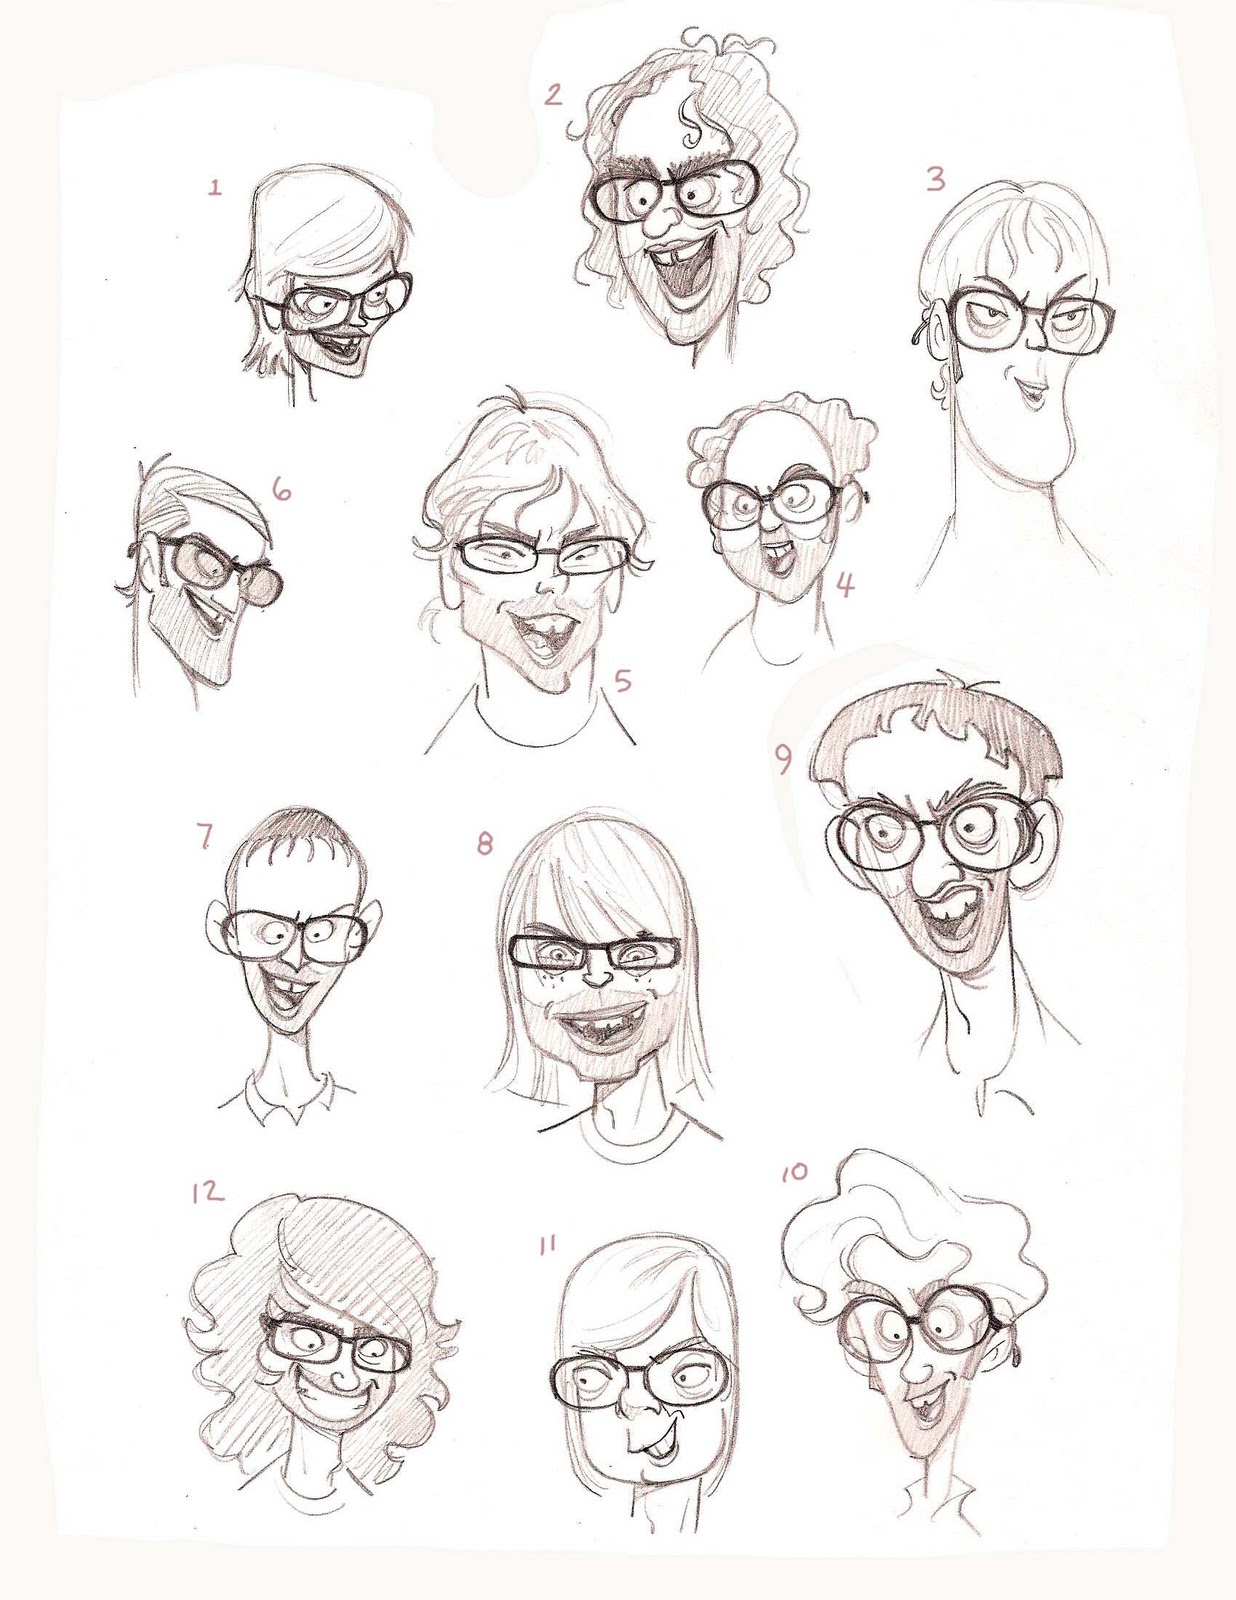 Animation Character Design Spot : Character designs by golden street animation